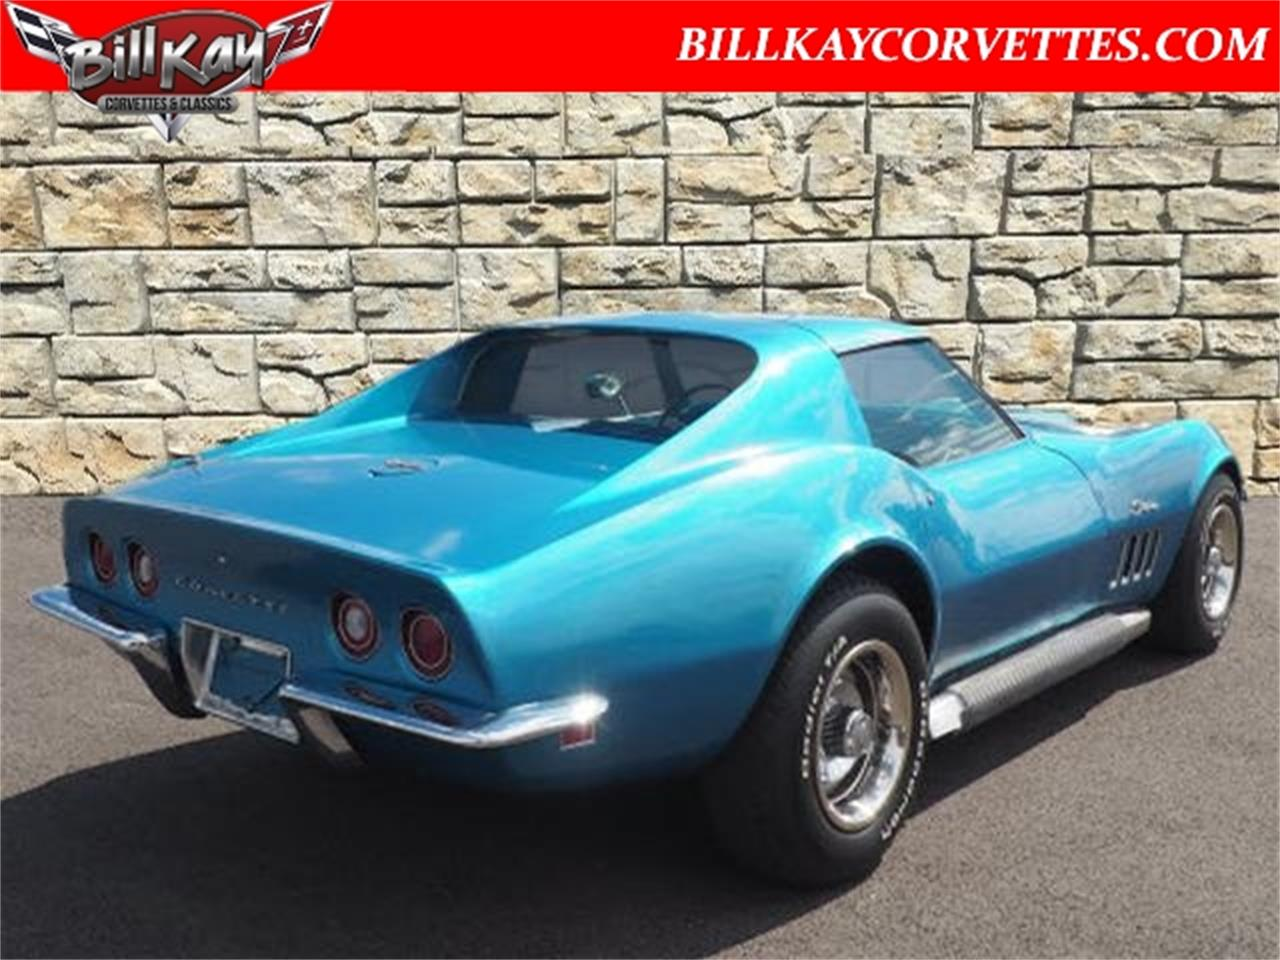 Large Picture of Classic 1969 Chevrolet Corvette located in Illinois - $27,980.00 Offered by Bill Kay Corvettes and Classics - MTY0